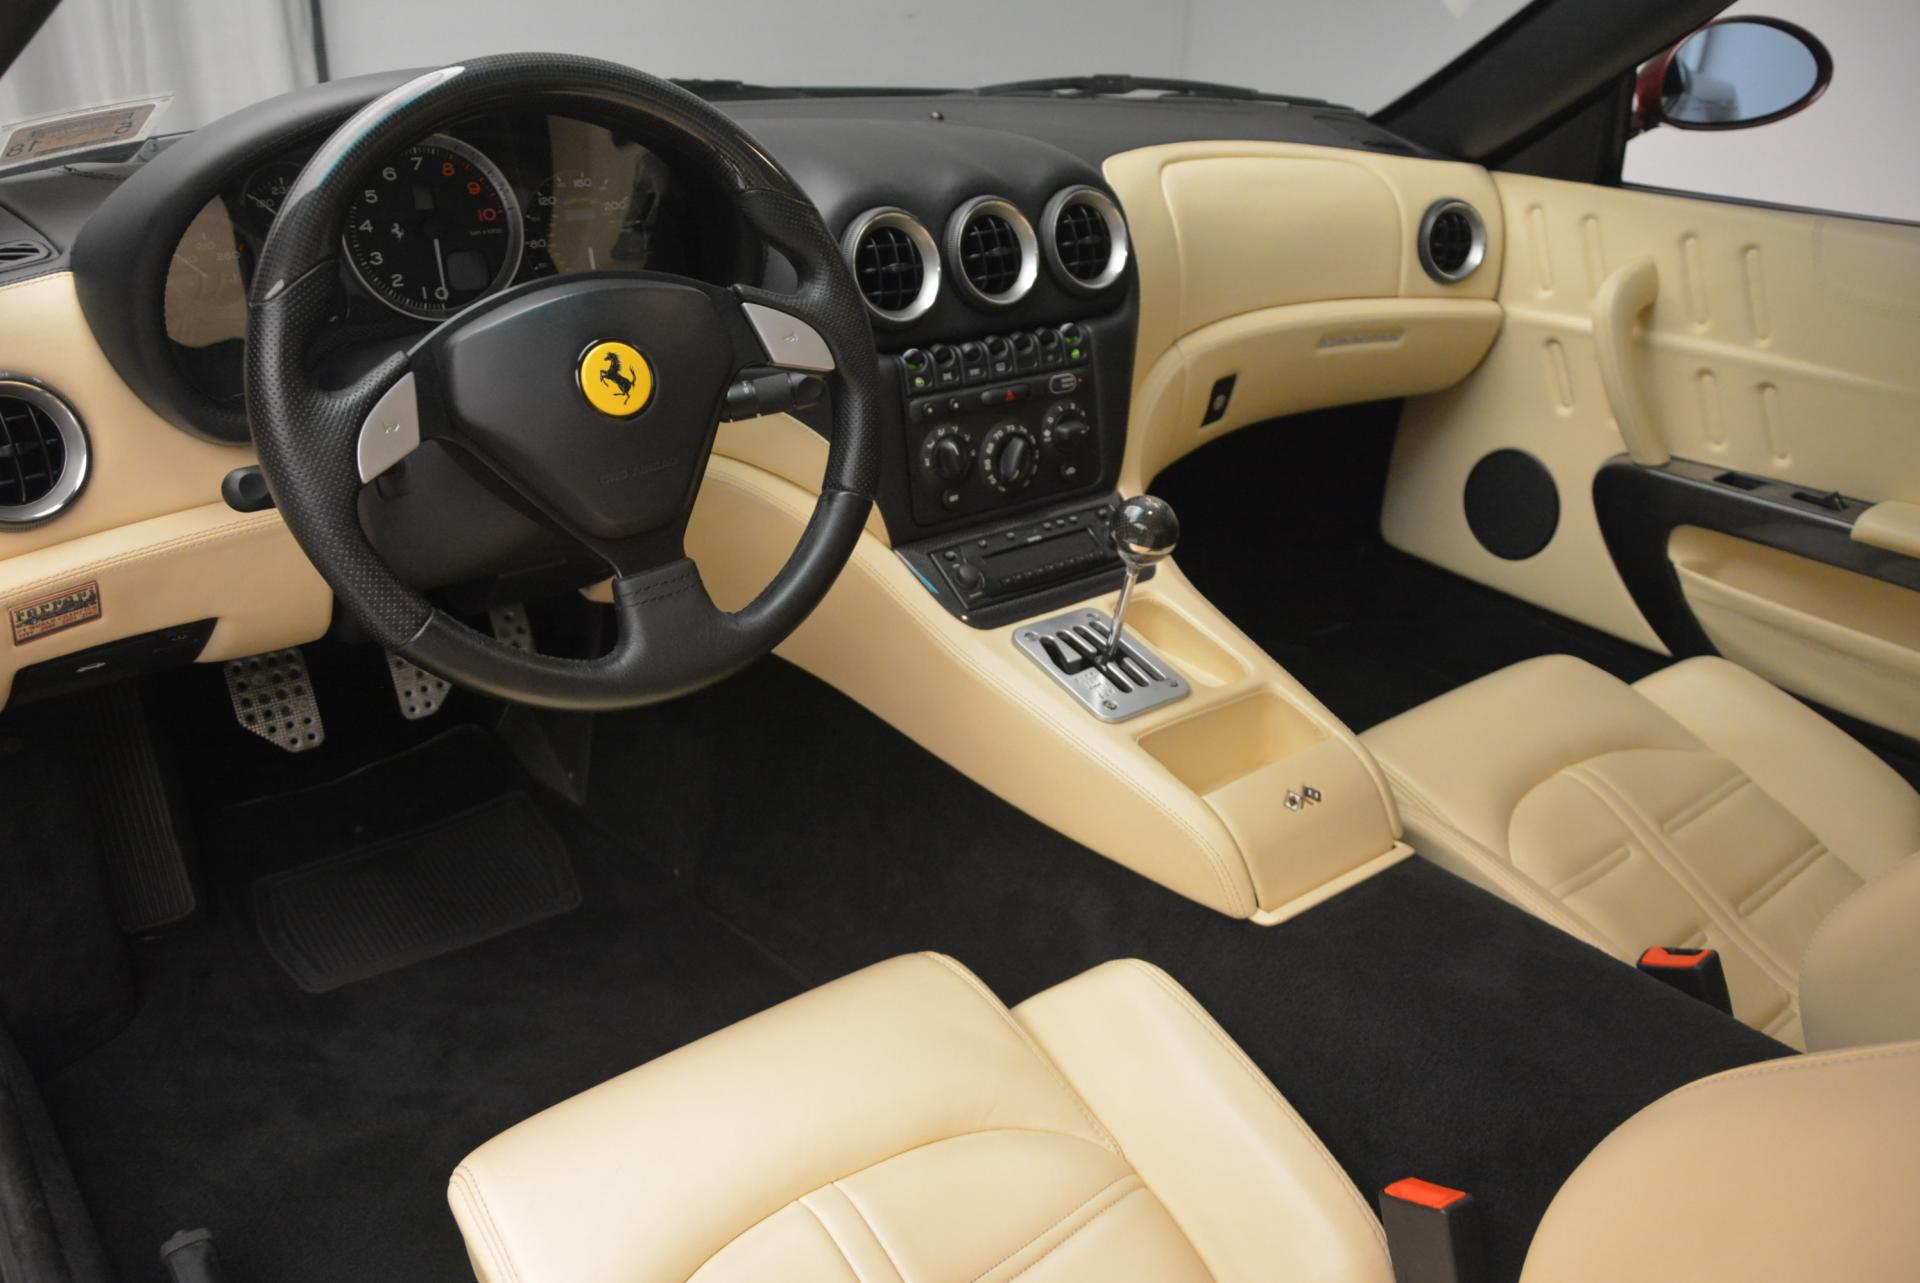 Used 2003 Ferrari 575M Maranello 6-Speed Manual For Sale In Greenwich, CT 143_p13